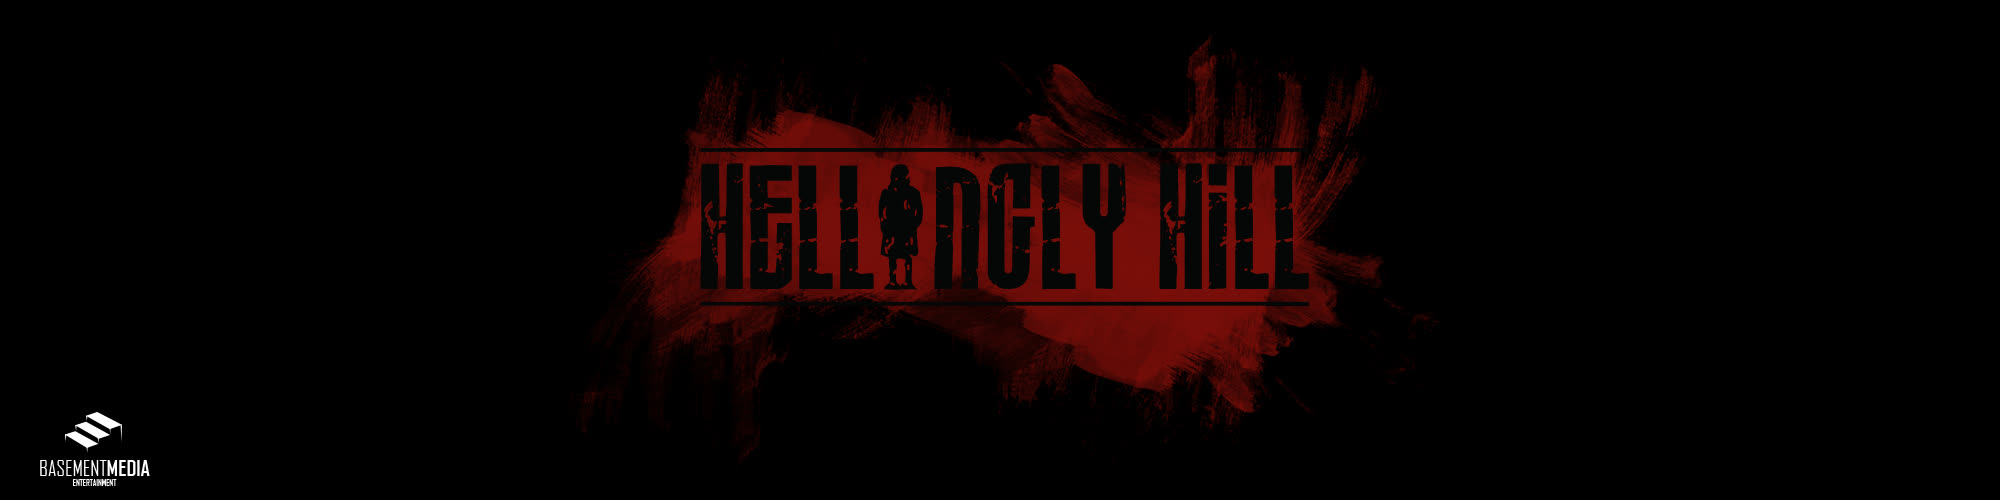 Hellingly Hill